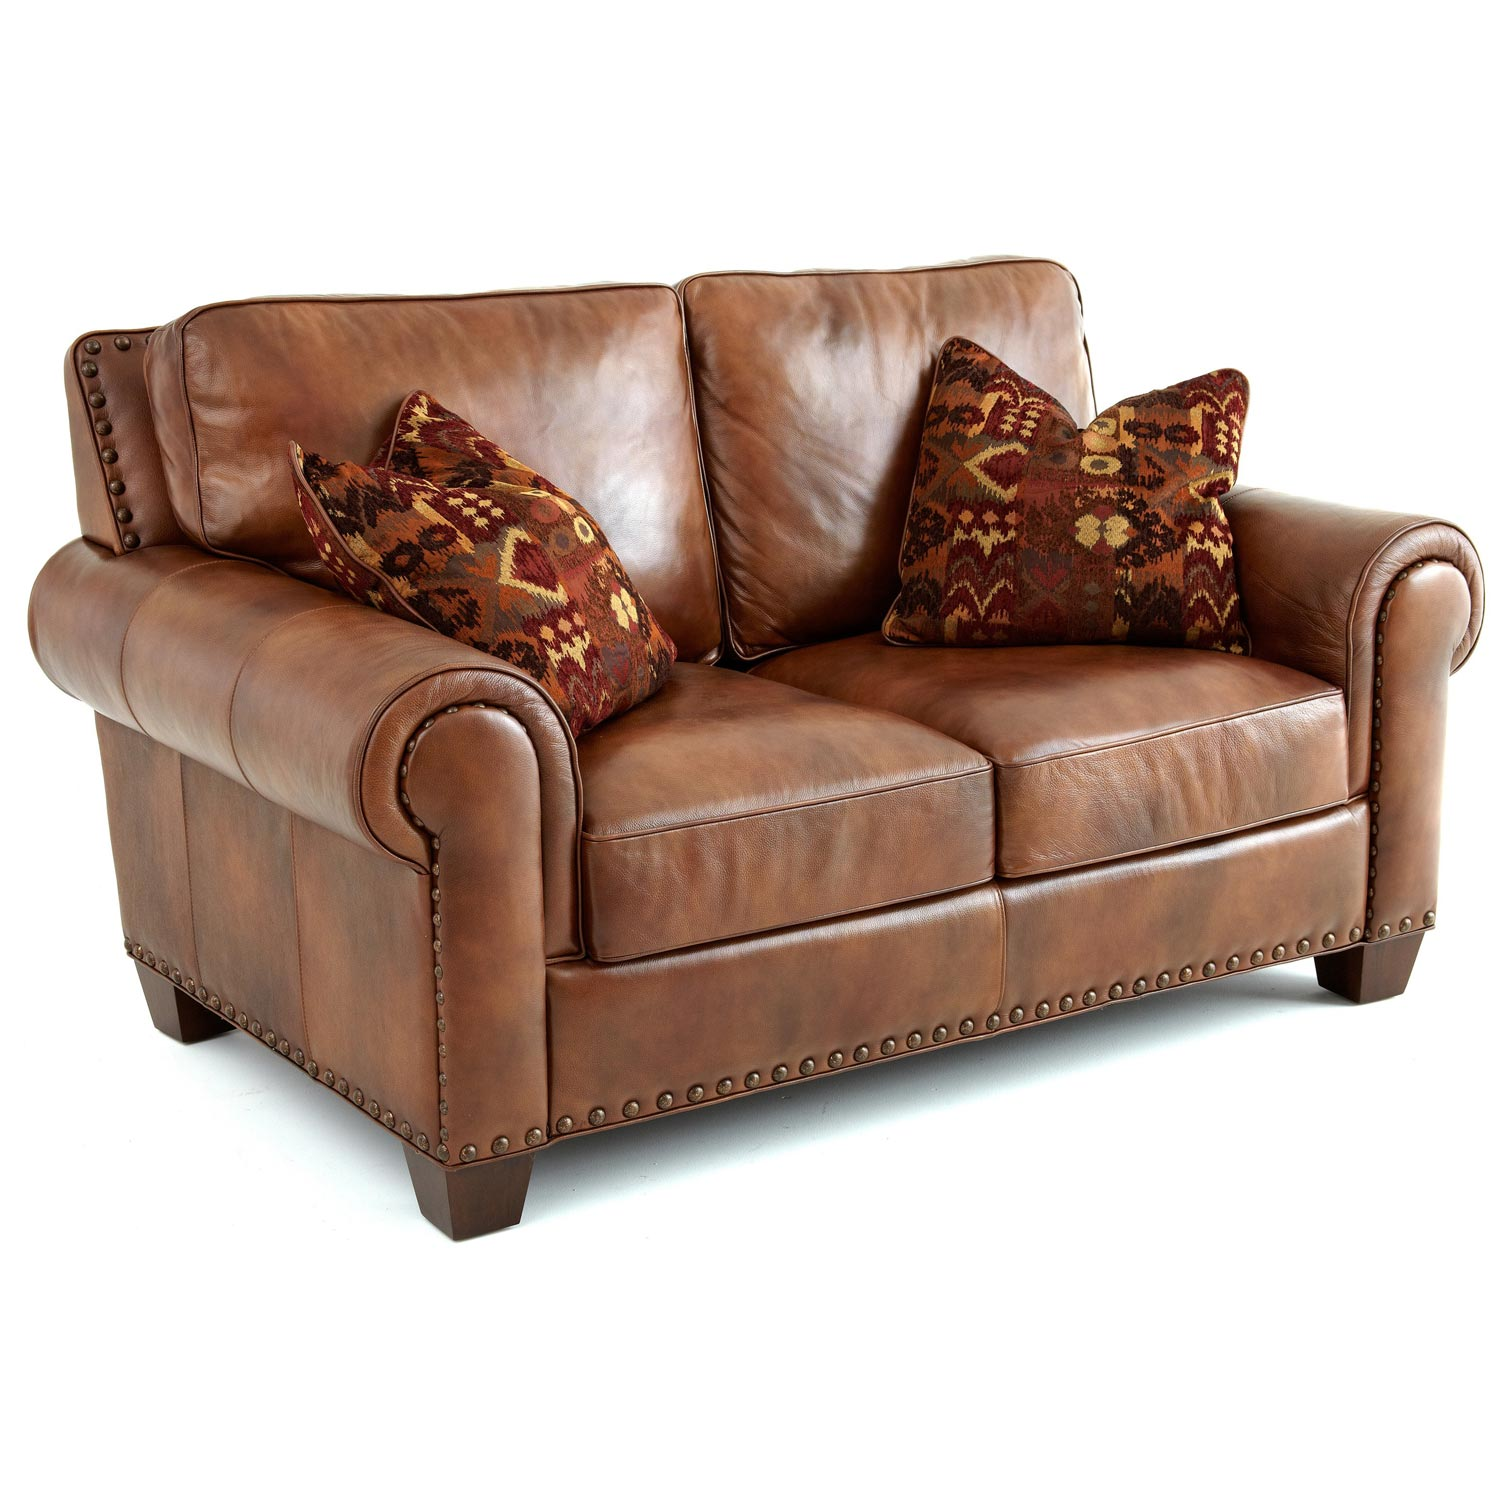 Silverado Loveseat - Rolled Arms, Pillows, Caramel Brown Leather - SSC-SR910L